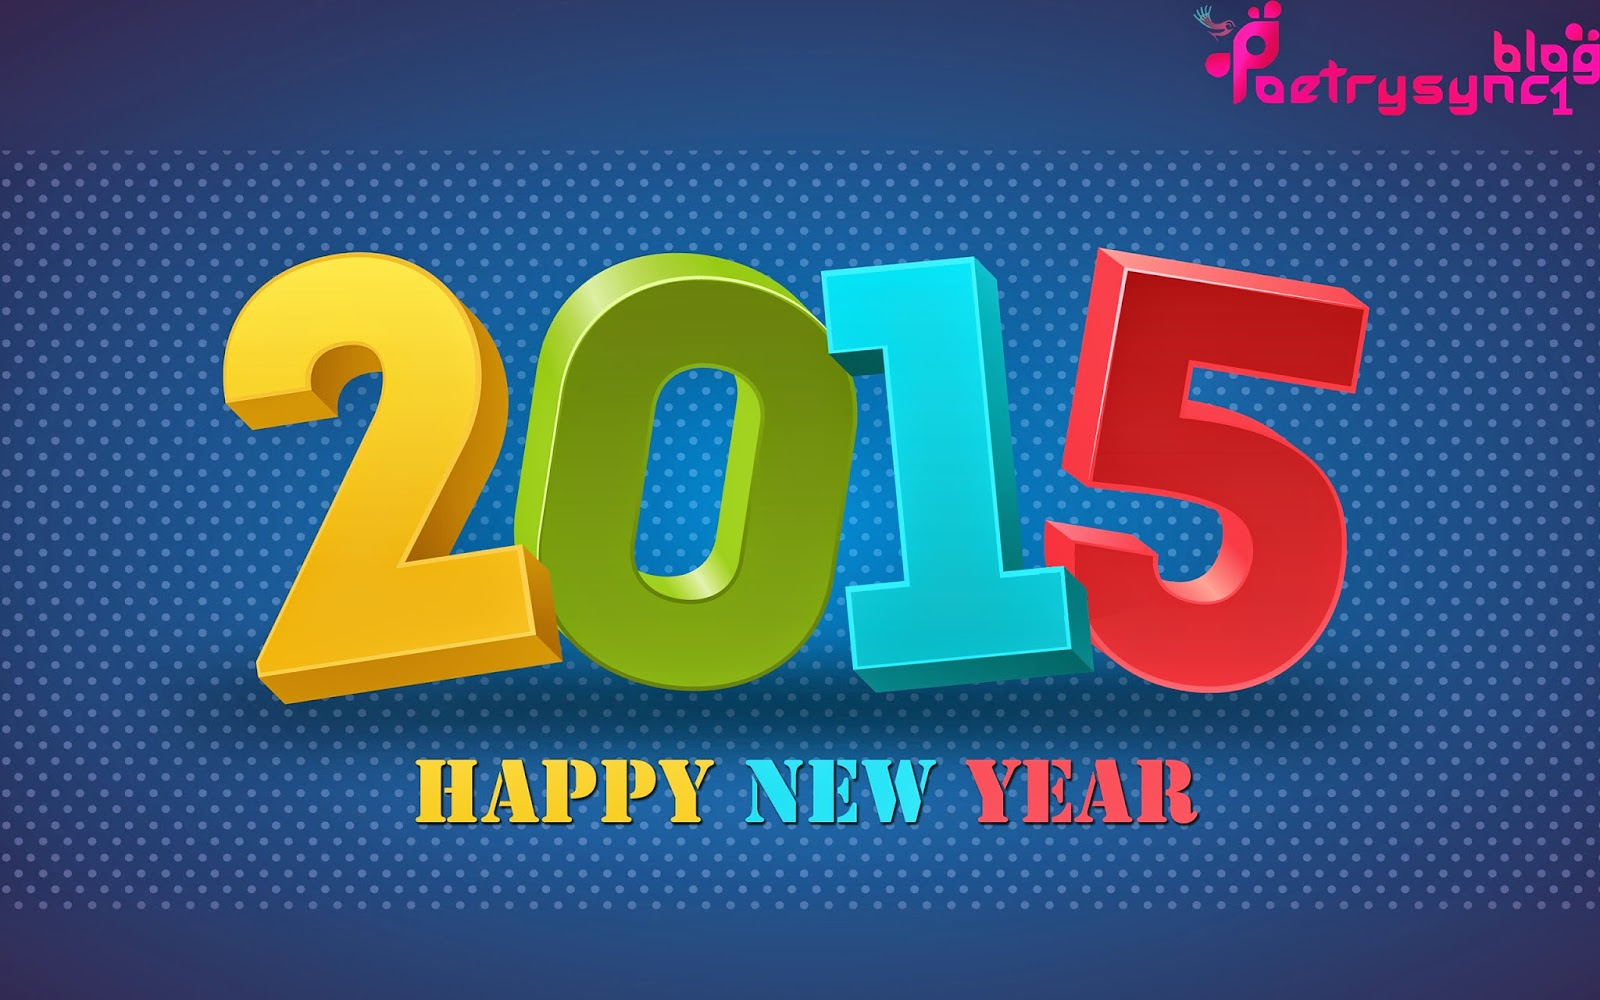 Happy new year Wallpapers Collection - romantic urdu quotes Love poems